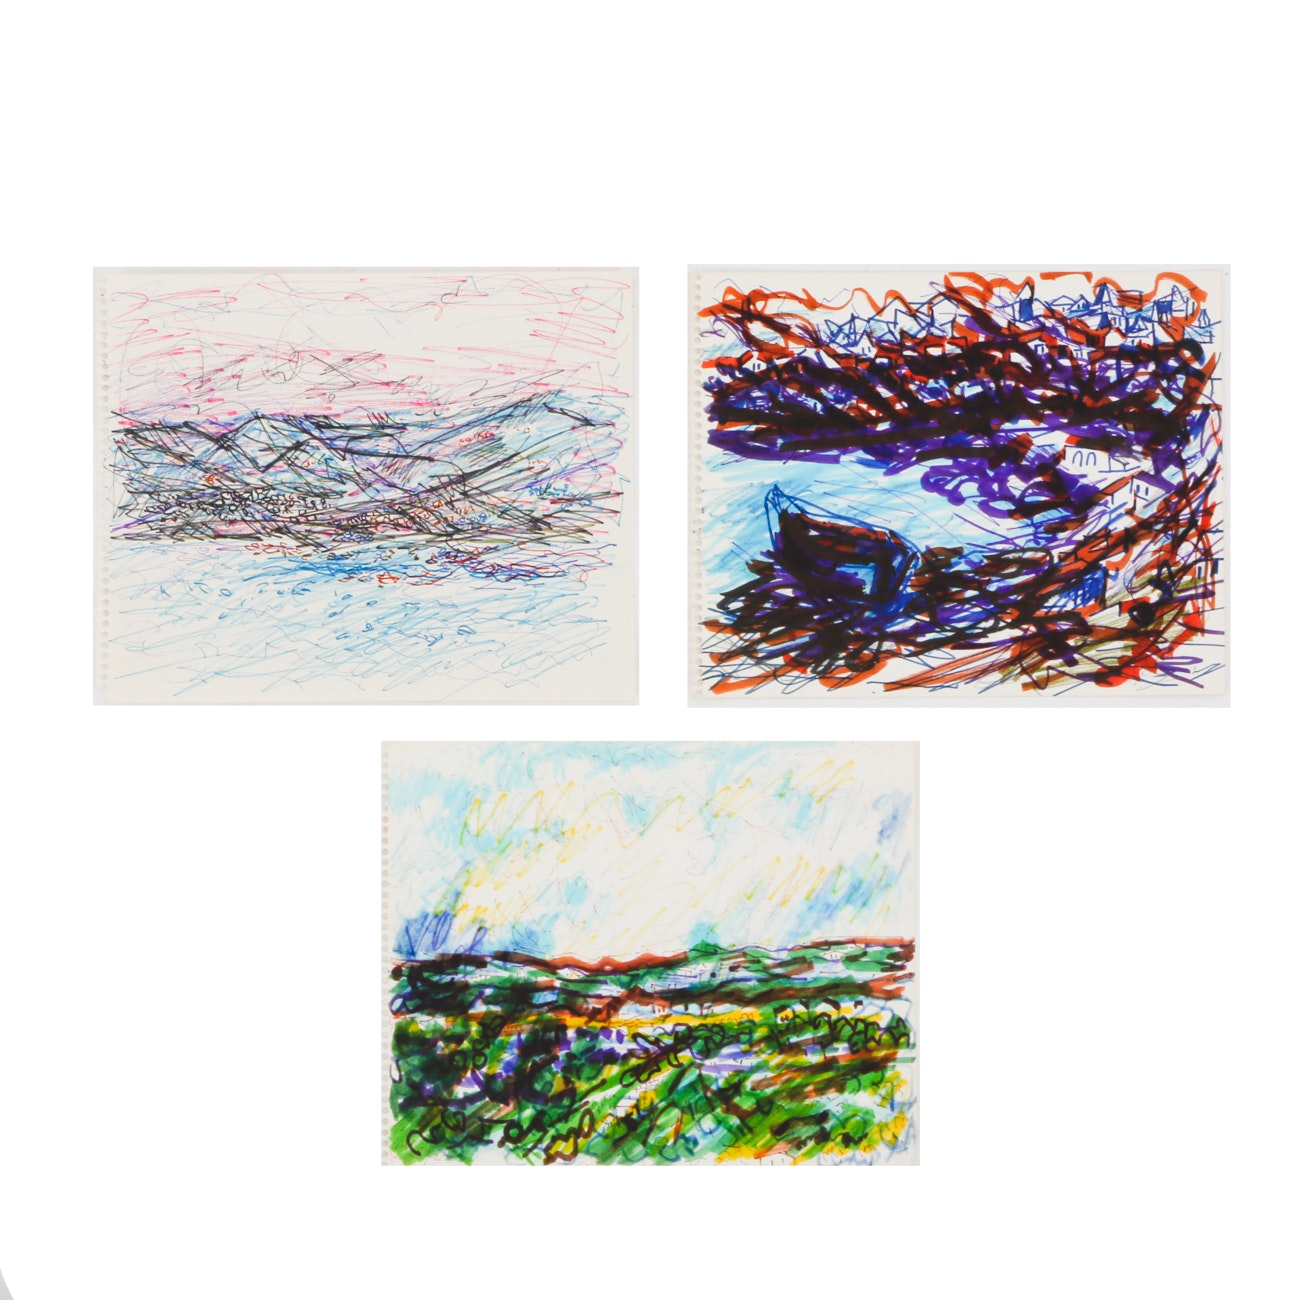 Three Paul Chidlaw Original Abstract Ink Marker Drawings on Paper